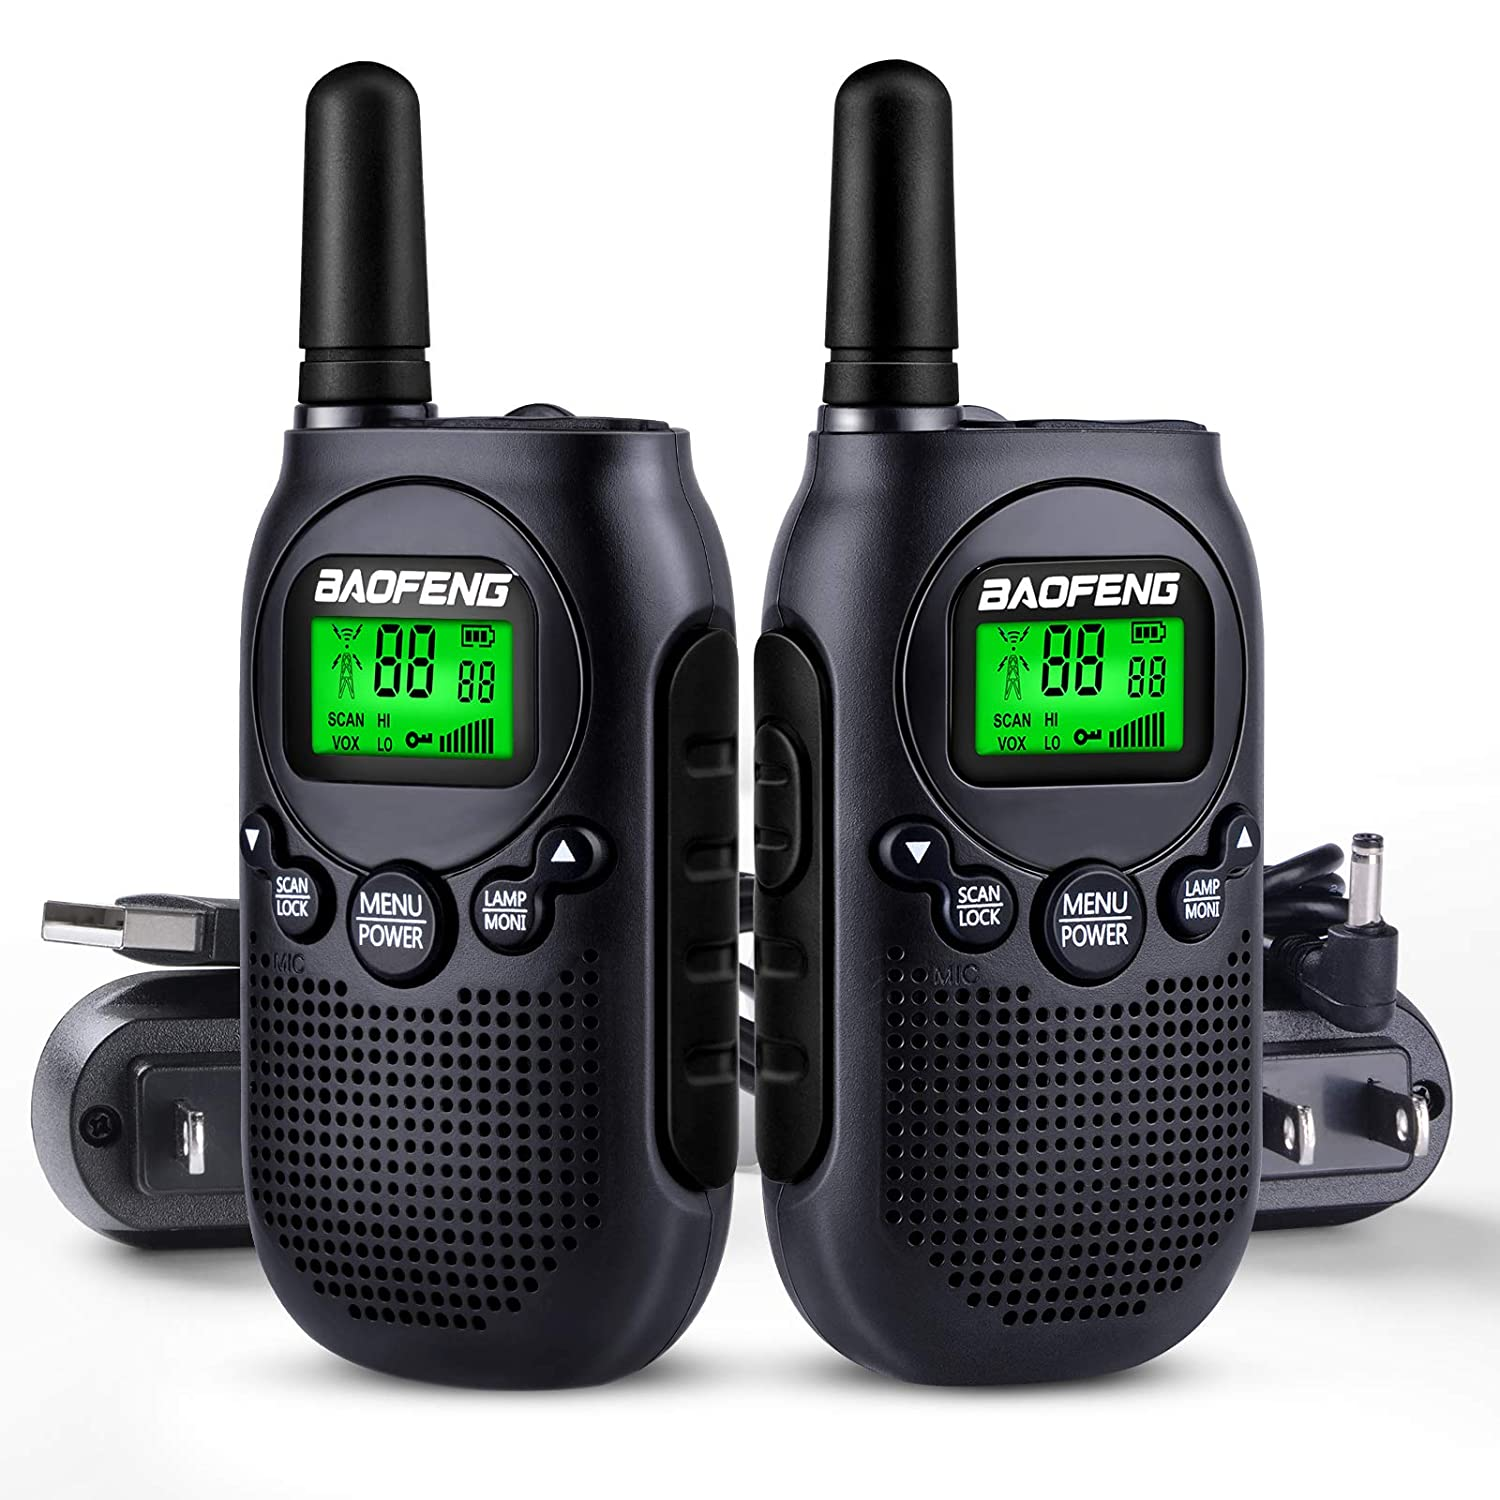 1 Pair Yellow Baofeng BF-T6 Kids Walkie Talkies Long Range Mini 2 Way Radios for Boys Girls Children Frquency 22 Channels USB//AC Wall Charger Rechargeable